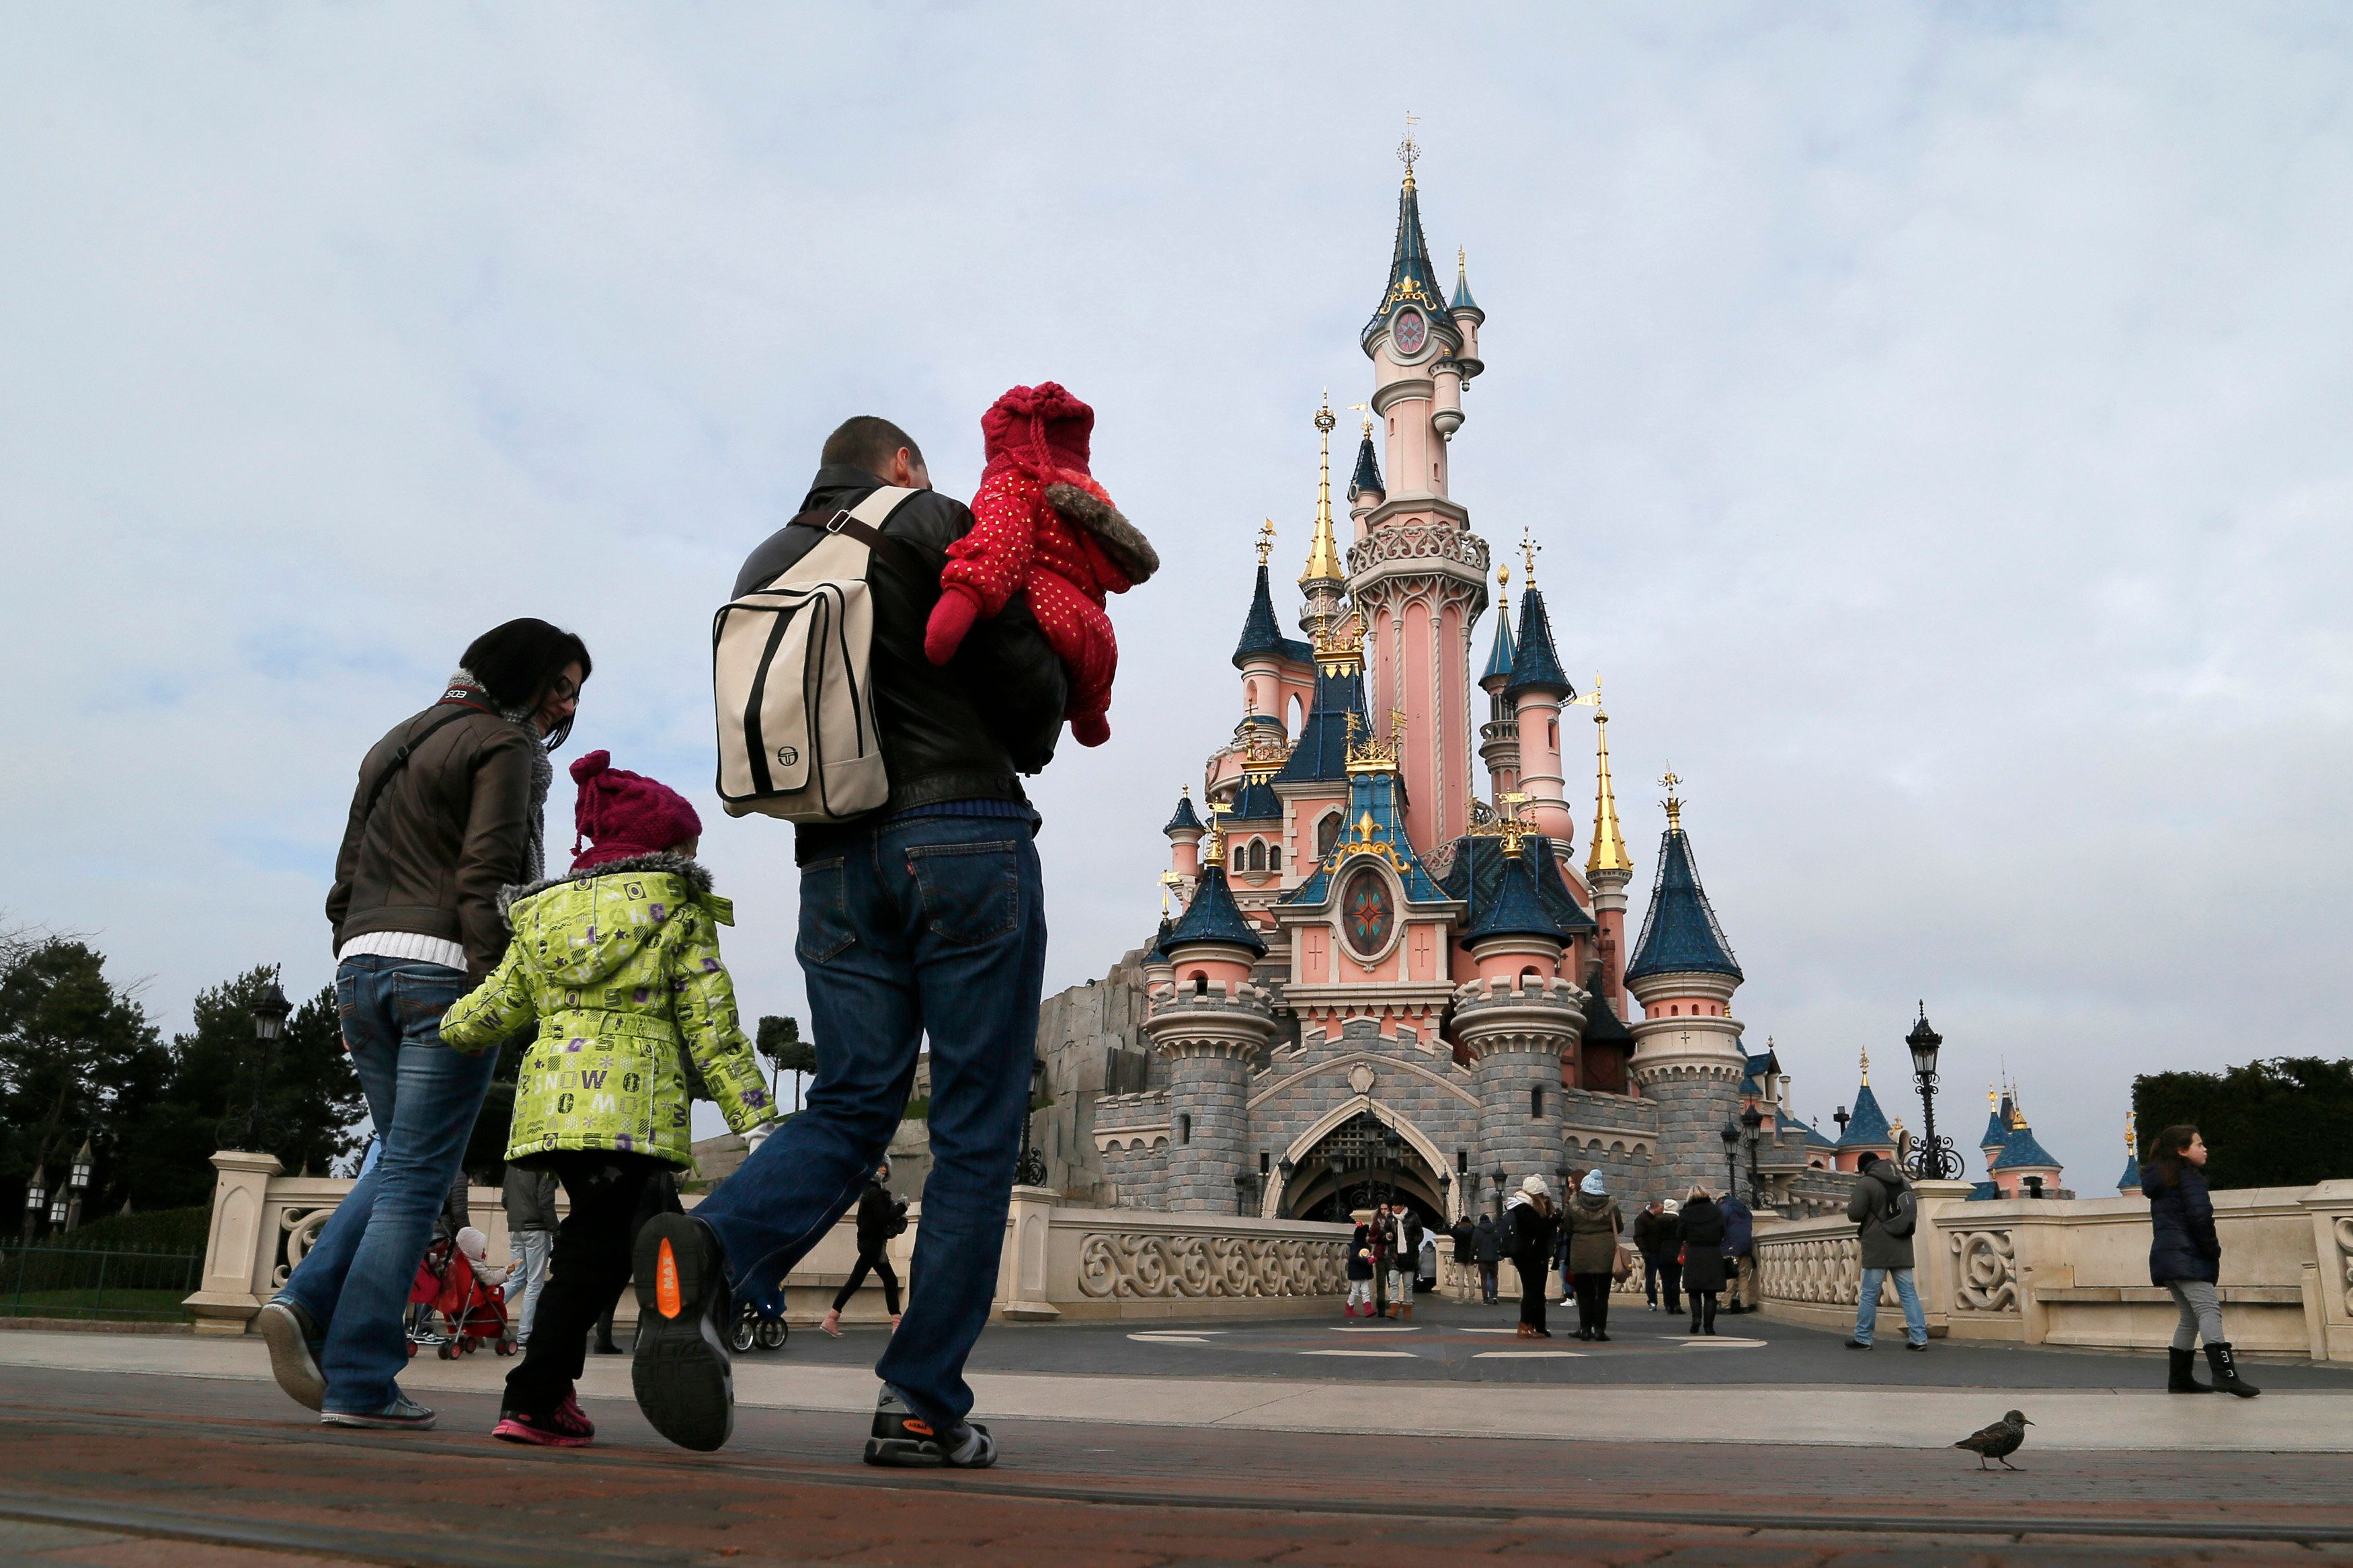 Visitors walk towards the Sleeping Beauty Castle during a visit to the Disneyland Paris Resort run by EuroDisney S.C.A in Marne-la-Vallee January 21, 2015. Picture taken January 21, 2015.  To match Special Report EURODISNEY-SHAREHOLDERS/       REUTERS/Gonzalo Fuentes (FRANCE - Tags: BUSINESS SOCIETY TRAVEL)